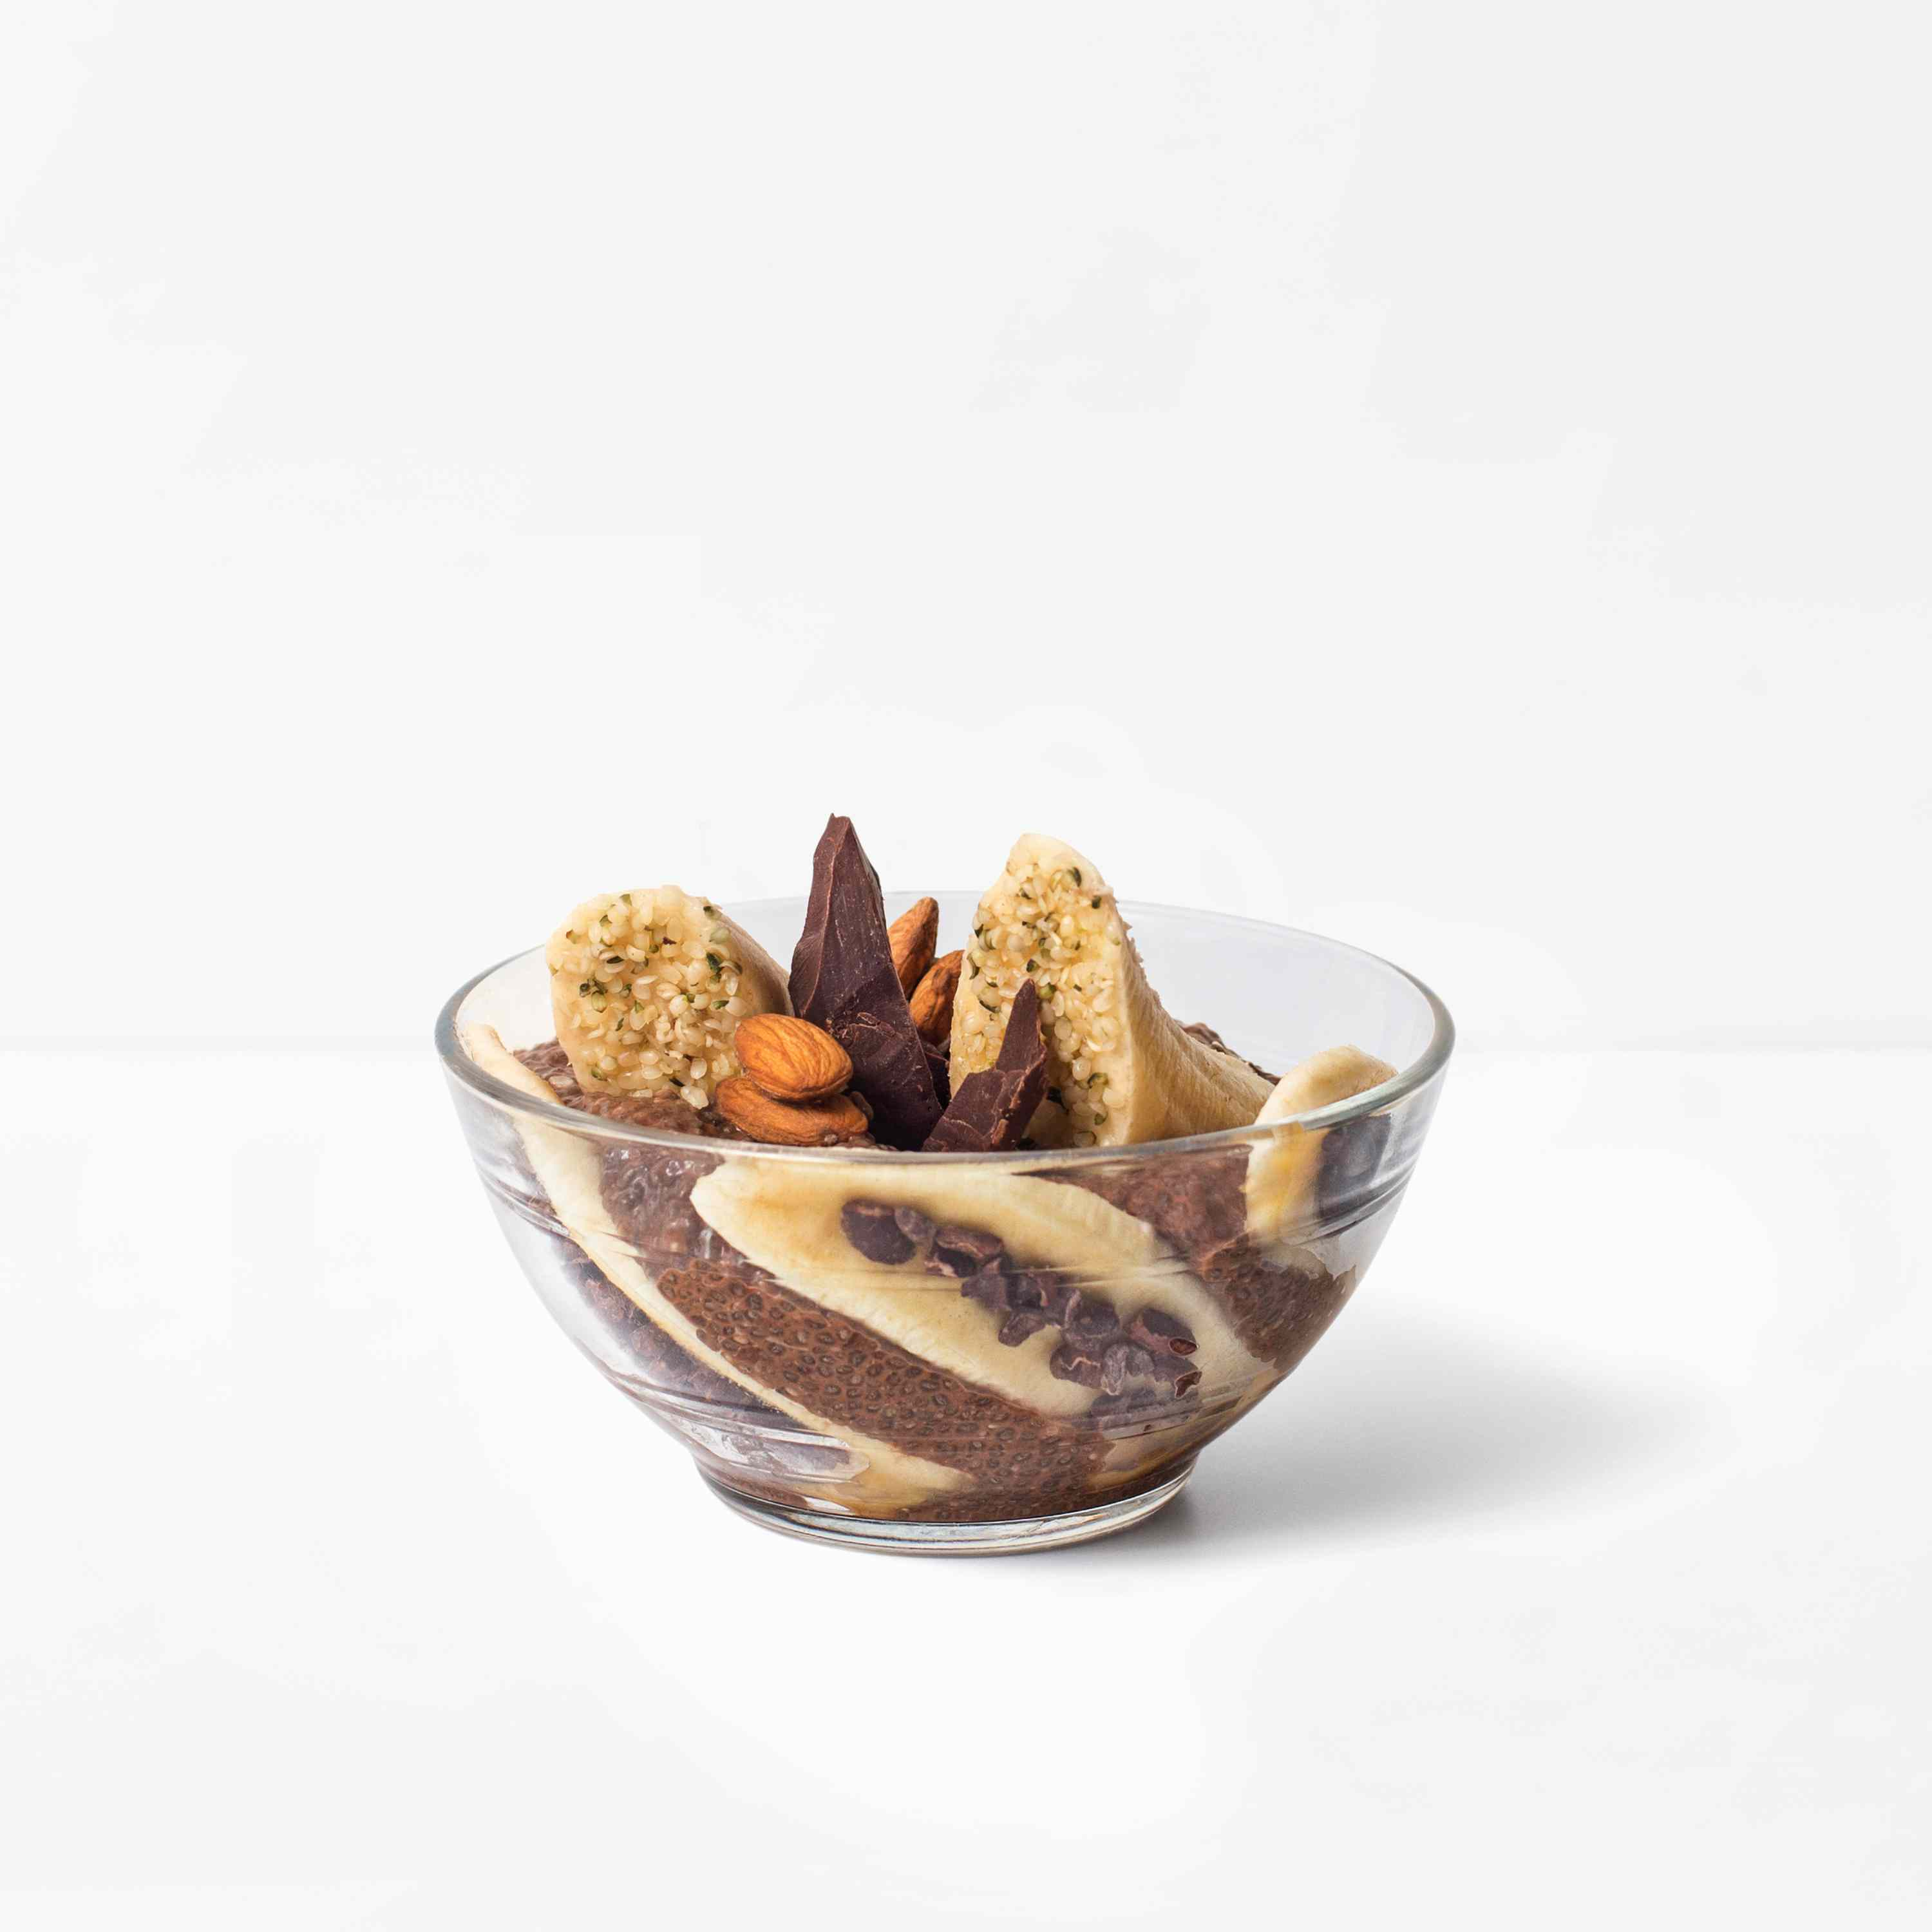 A chocolate protein and almond chia bowl presented in a glass dish